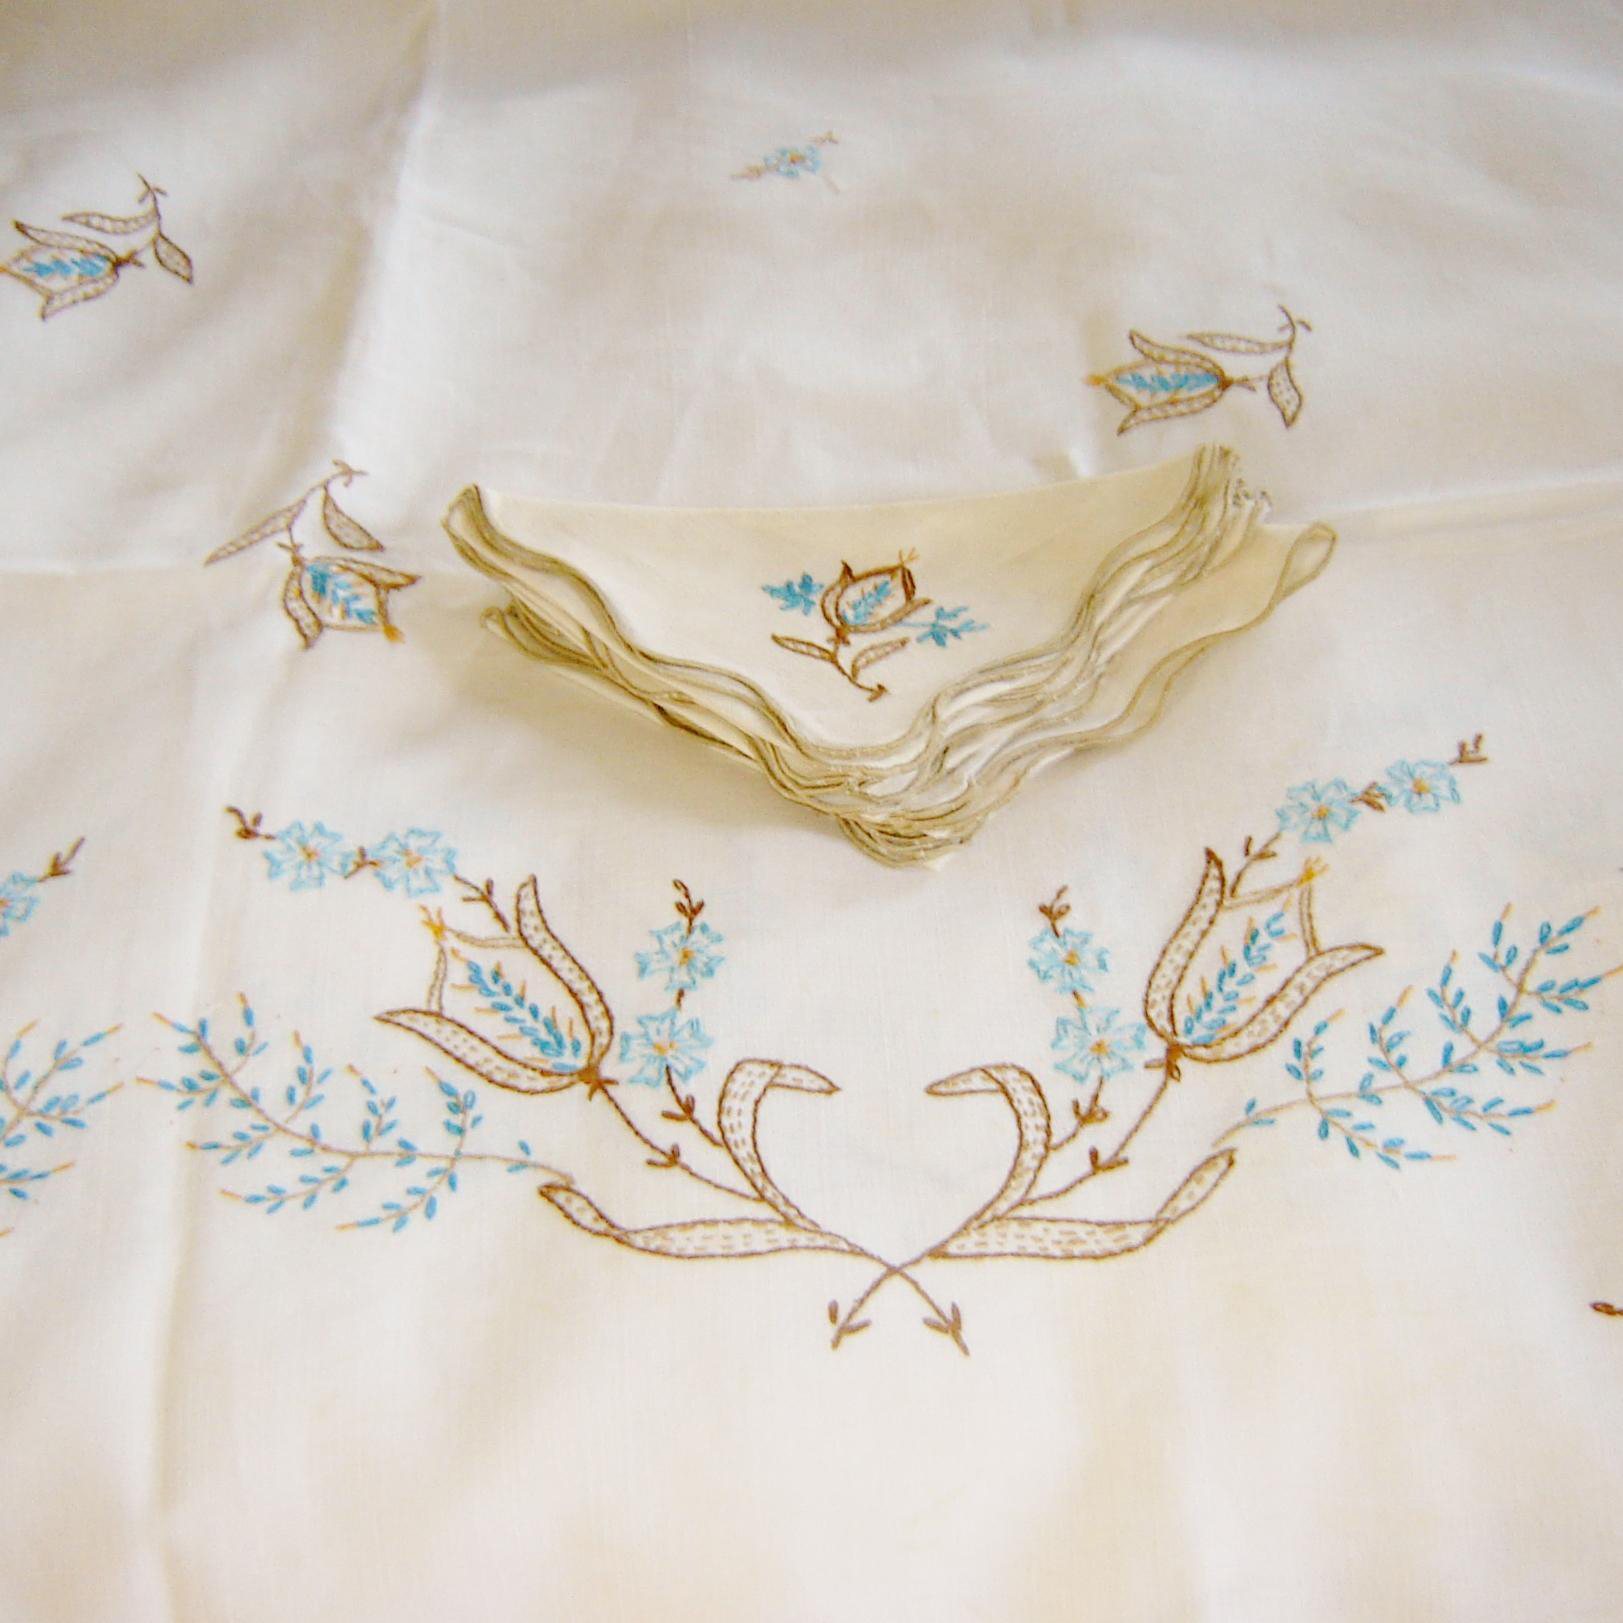 Vintage Embroidered Tablecloth 8 Napkins